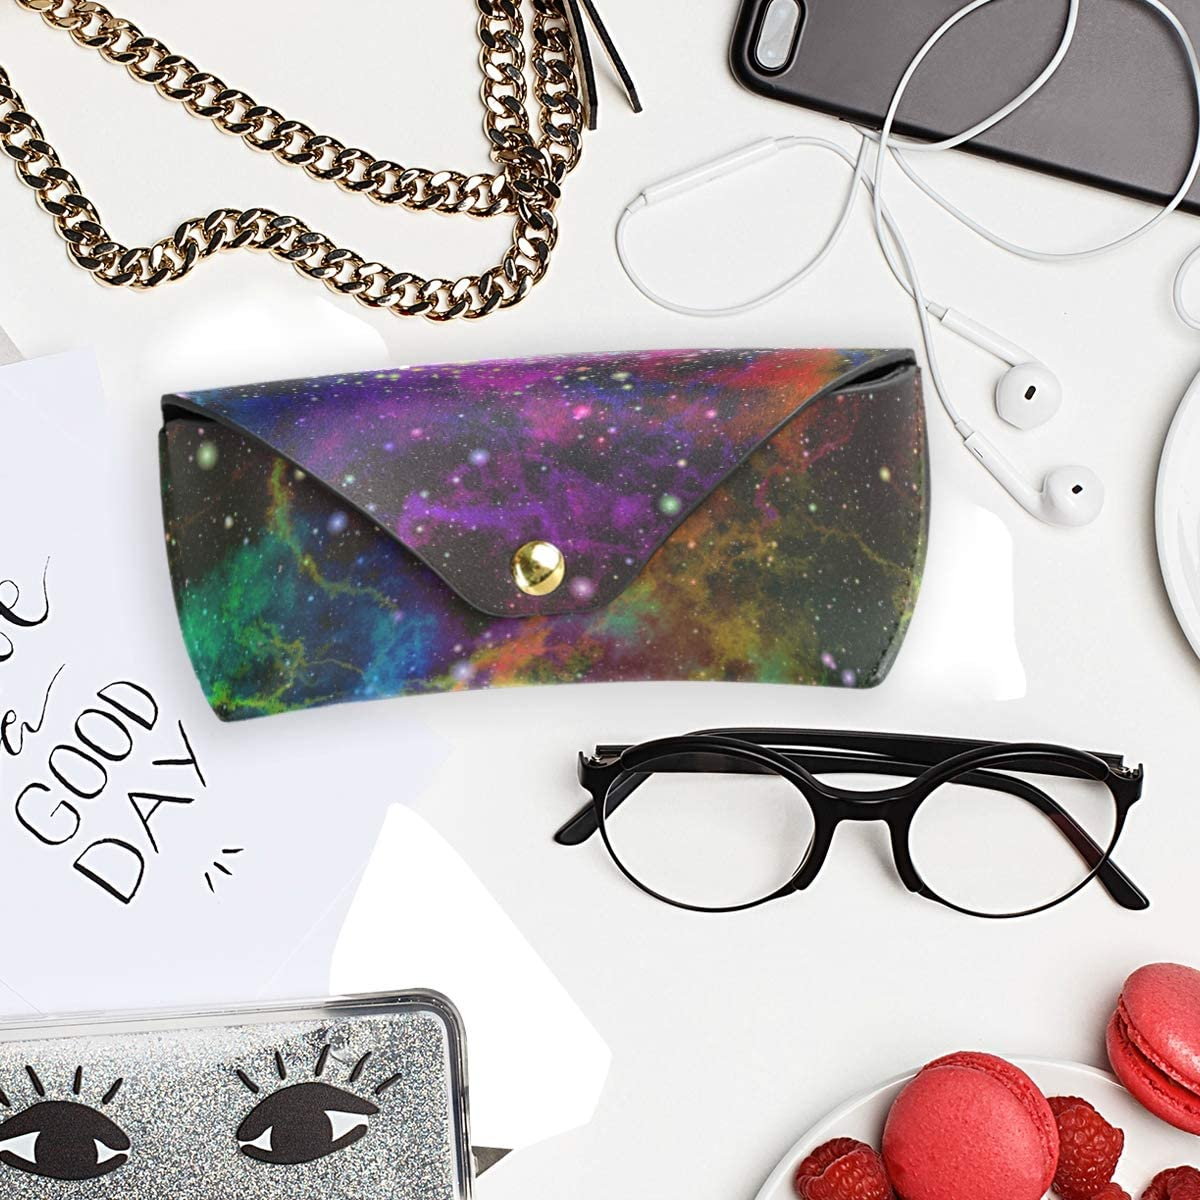 Portable Multiuse Sunglasses Case Eyeglasses Pouch School Colorful Nebula Starry Sky Space Eye Universe PU Leather Goggles Bag